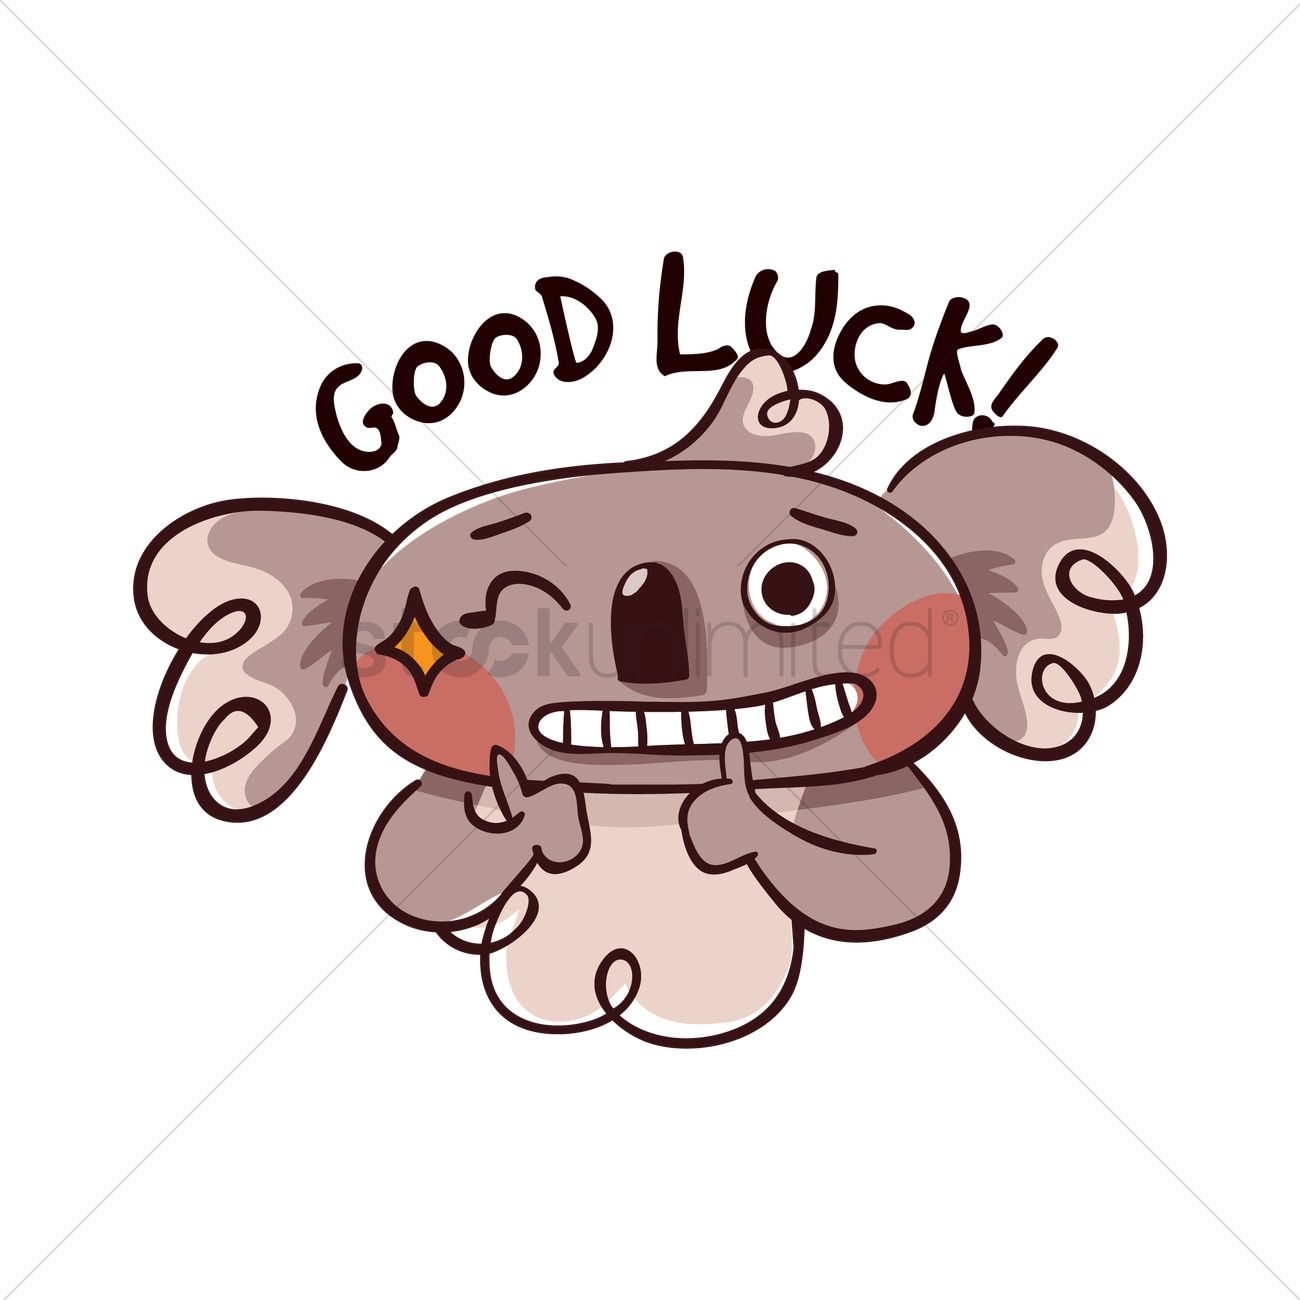 Cartoon Koala Bear Wishing Good Luck Vector Image